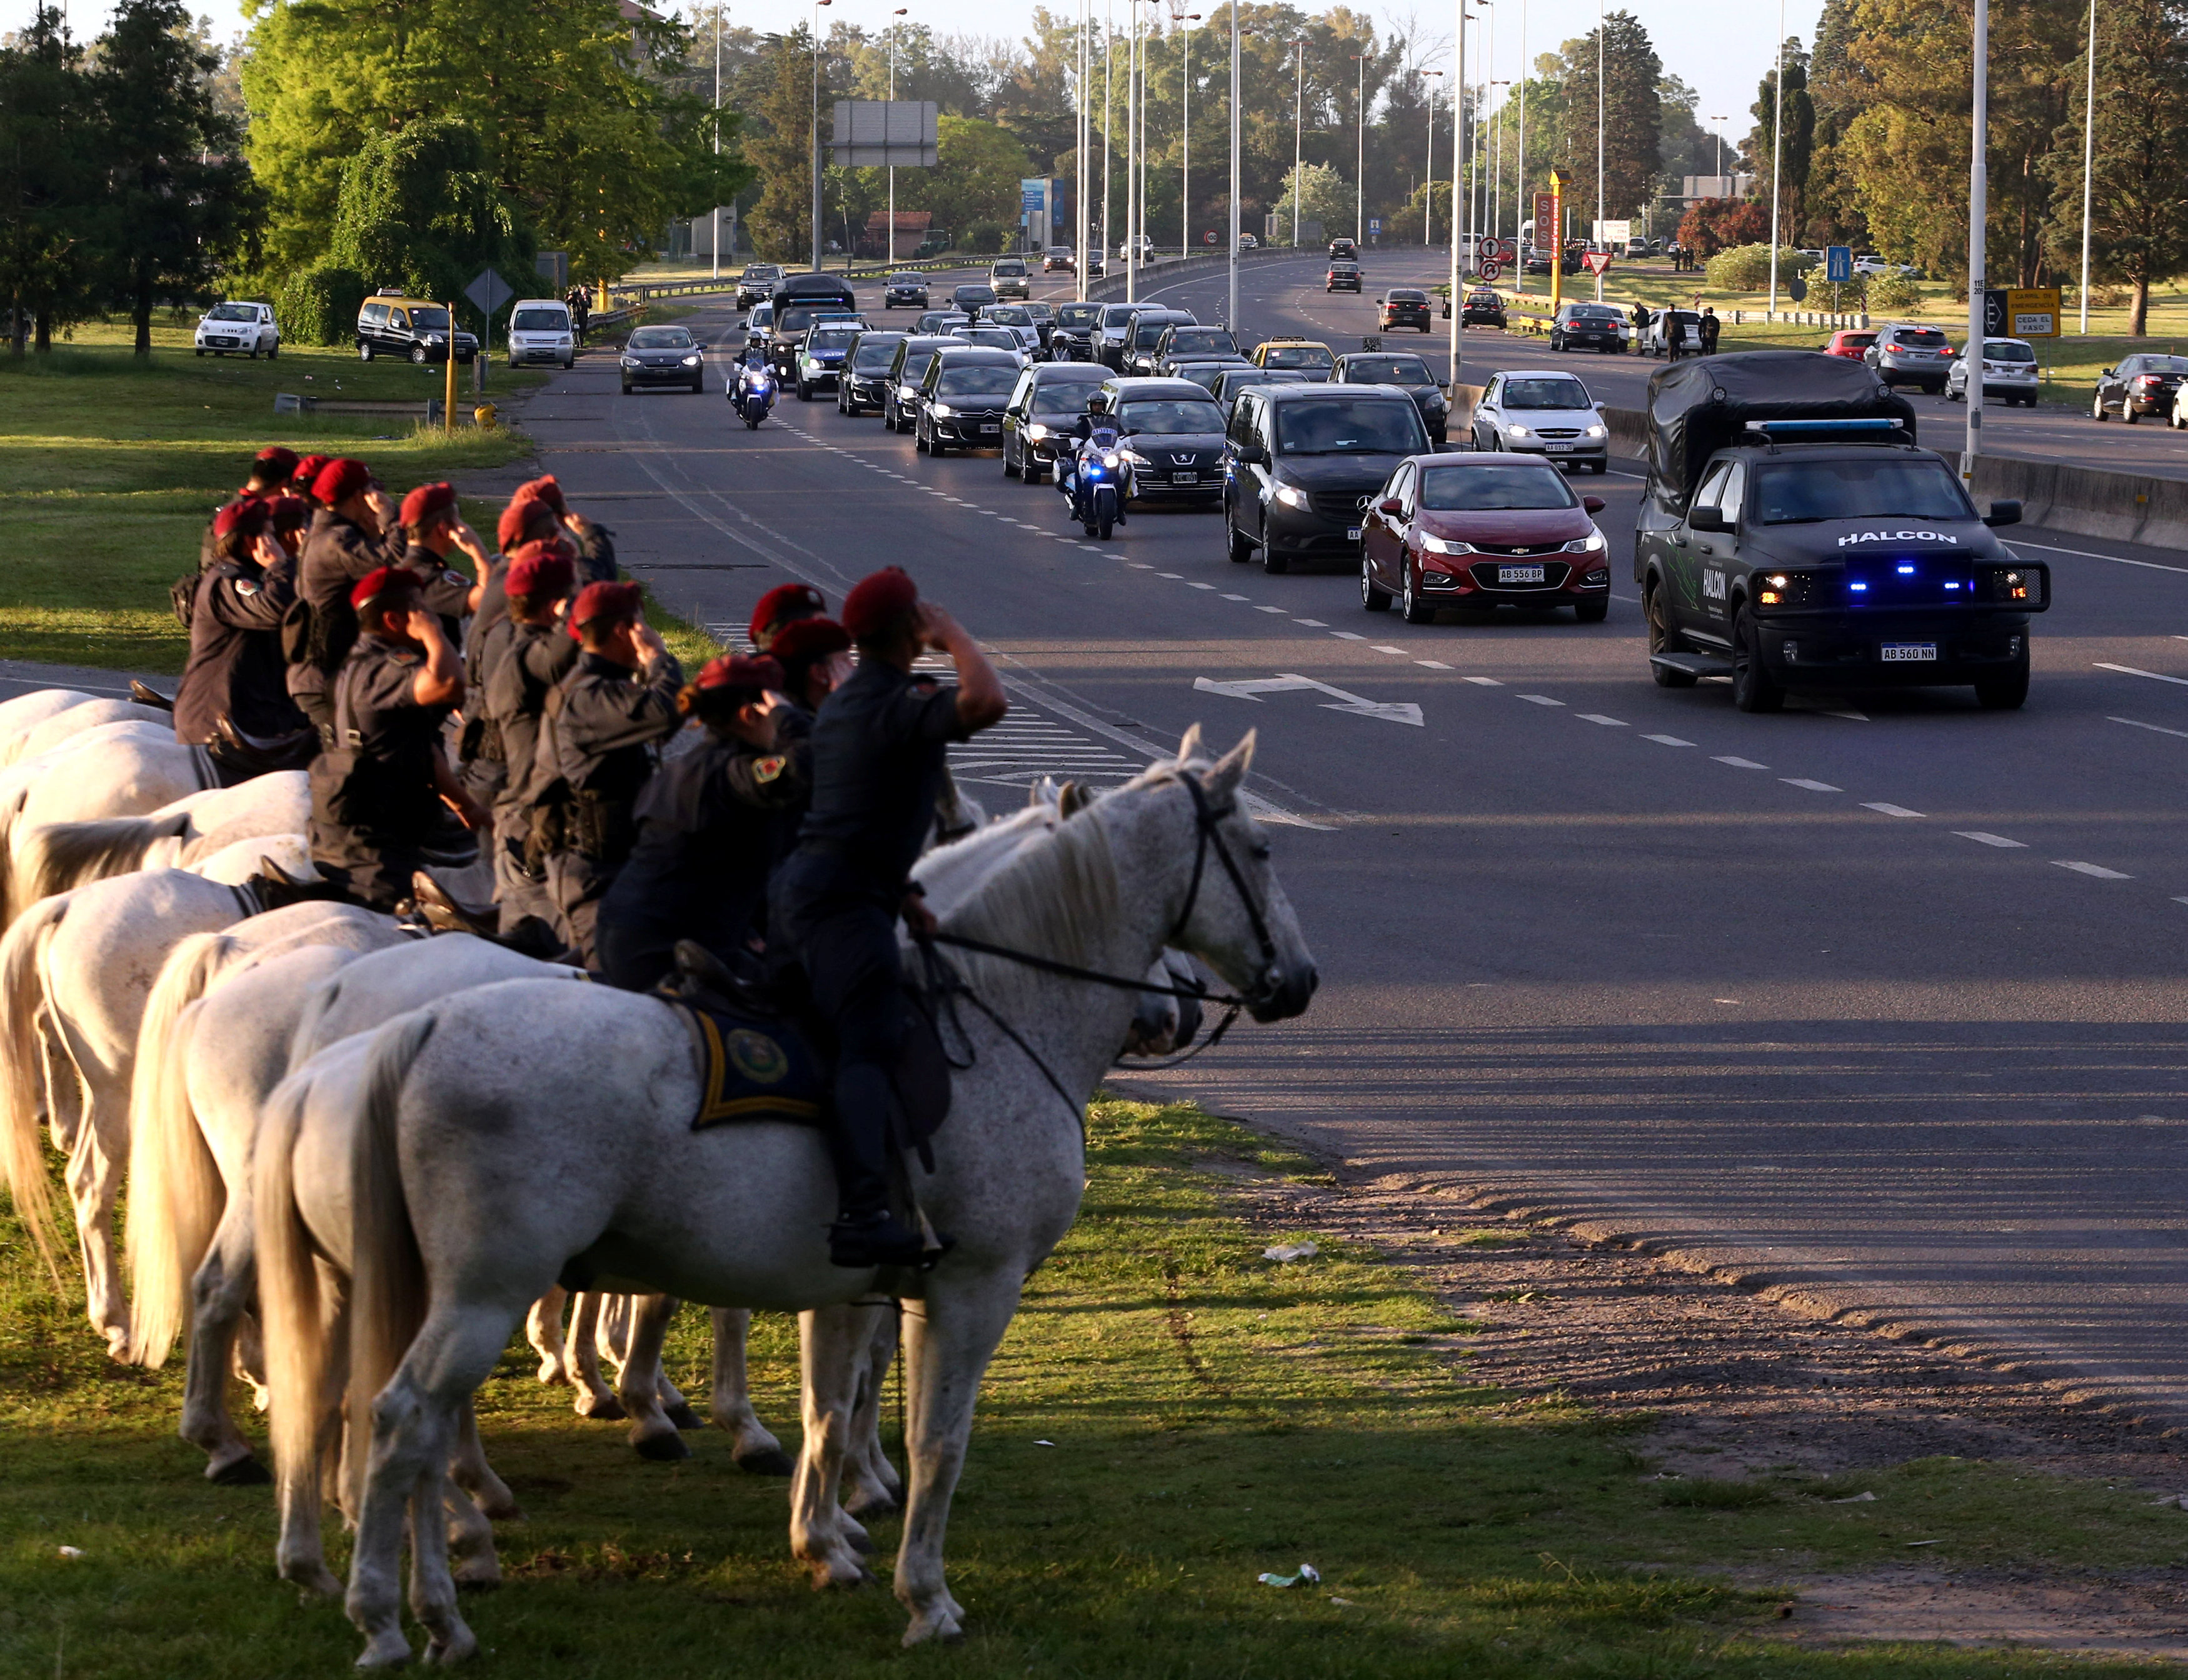 The funeral motorcade of the five Argentine citizens who were killed in the truck attack in New York on October 31 passes by as mounted policemen salute in Buenos Aires, Argentina November 6, 2017.